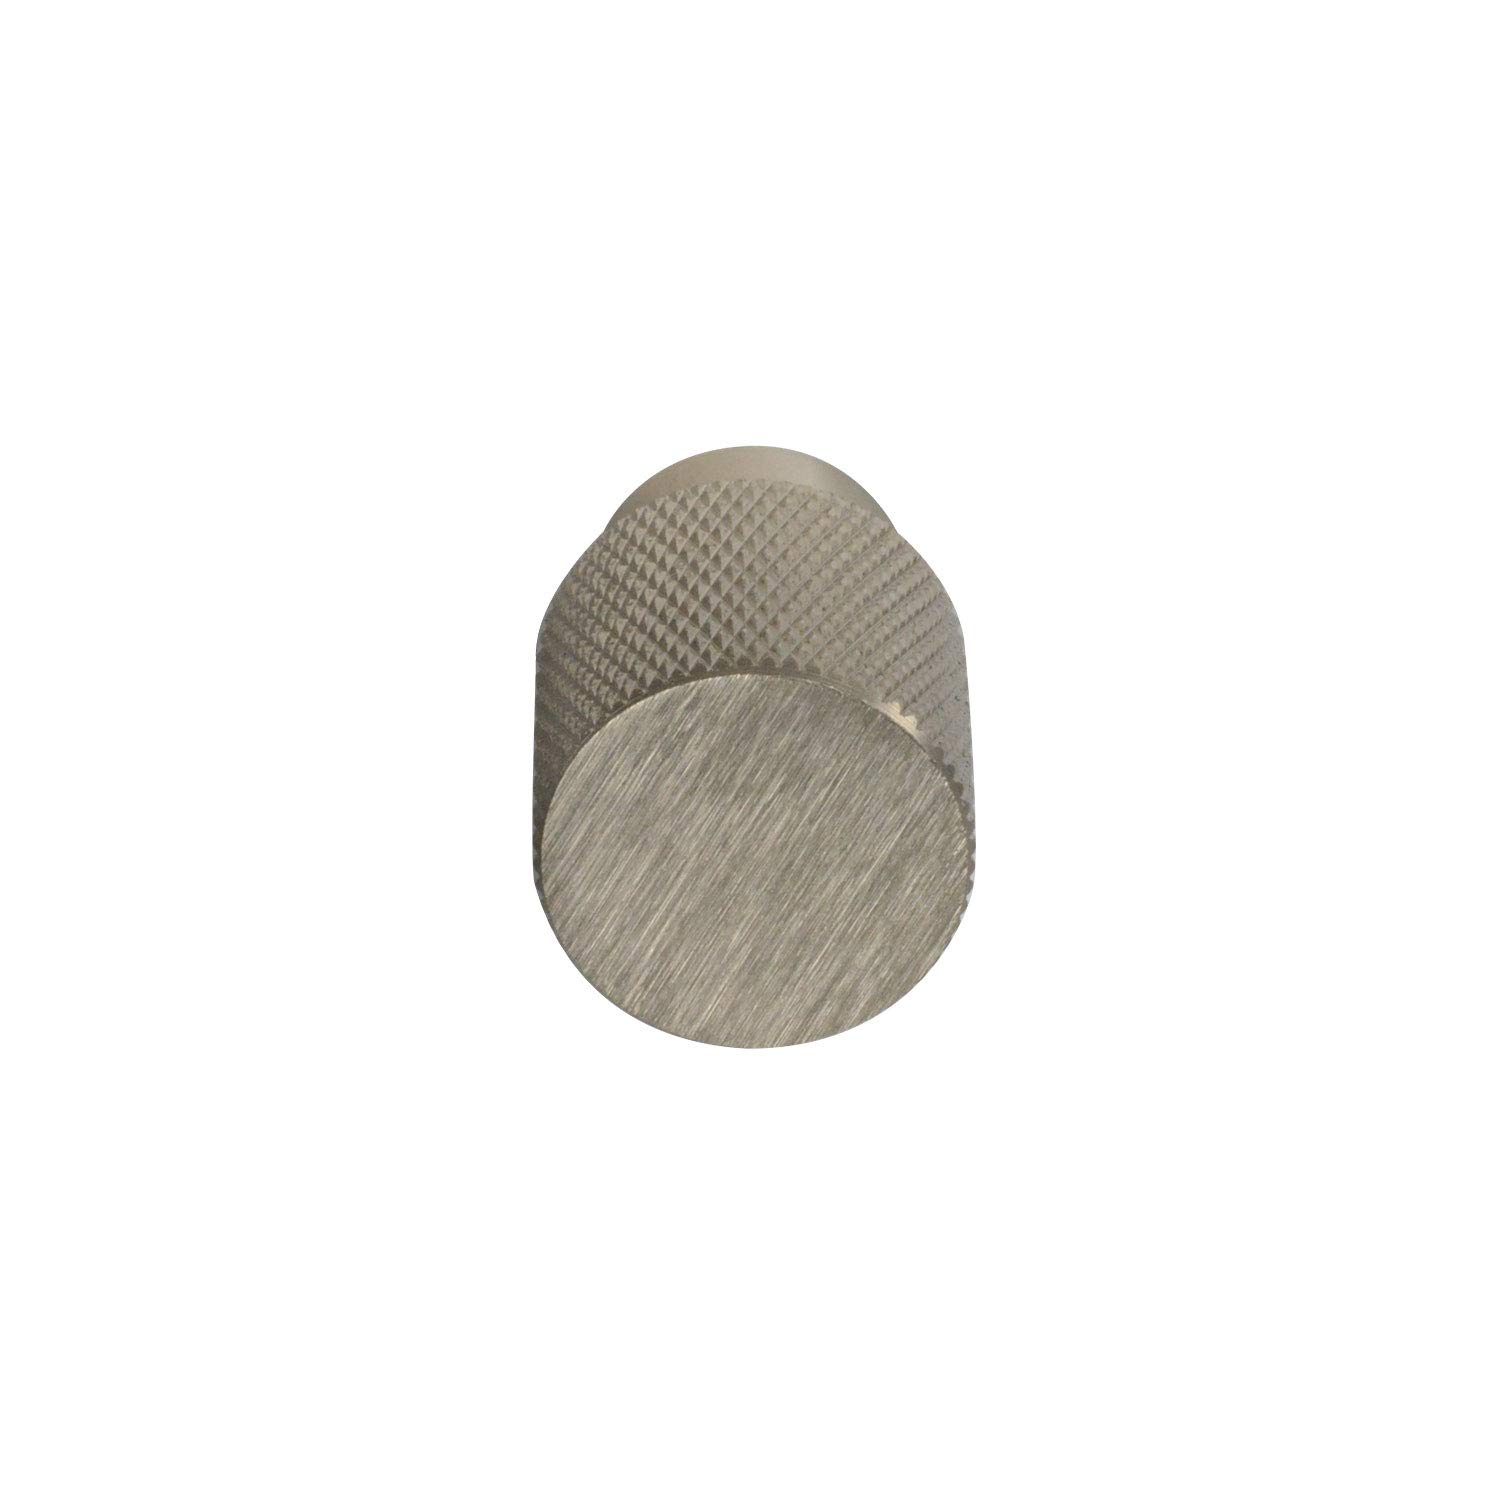 #6500 CKP Brand Linear Aluminum 3/4 in. (20mm) Knurled Knob, Brushed Nickel - 25 Pack by CKP (Image #2)